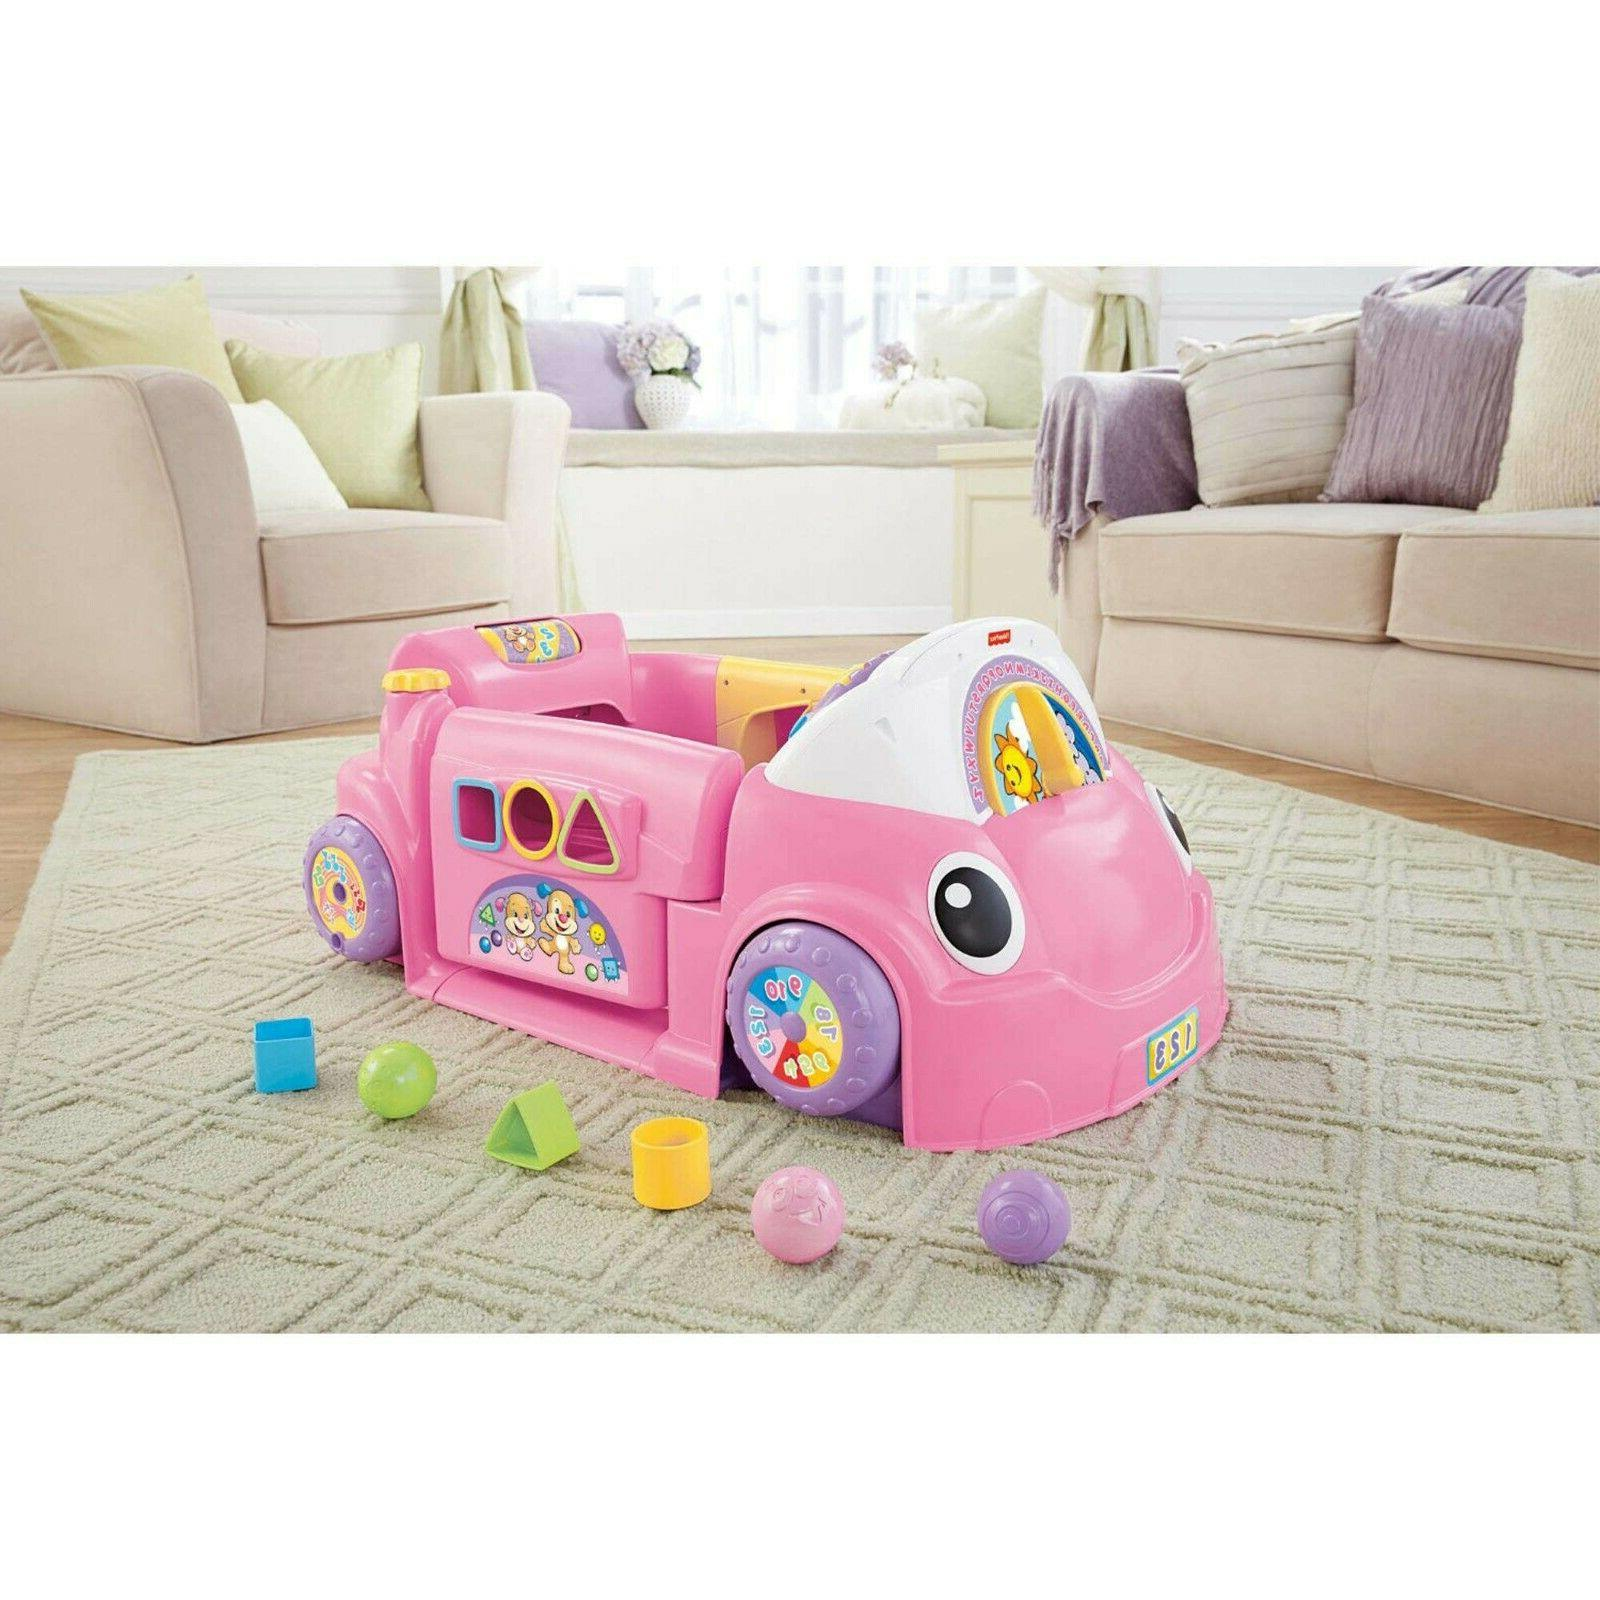 Educational Toys 2 Year Old Toddlers Age 1 3 Learning 6 Mont